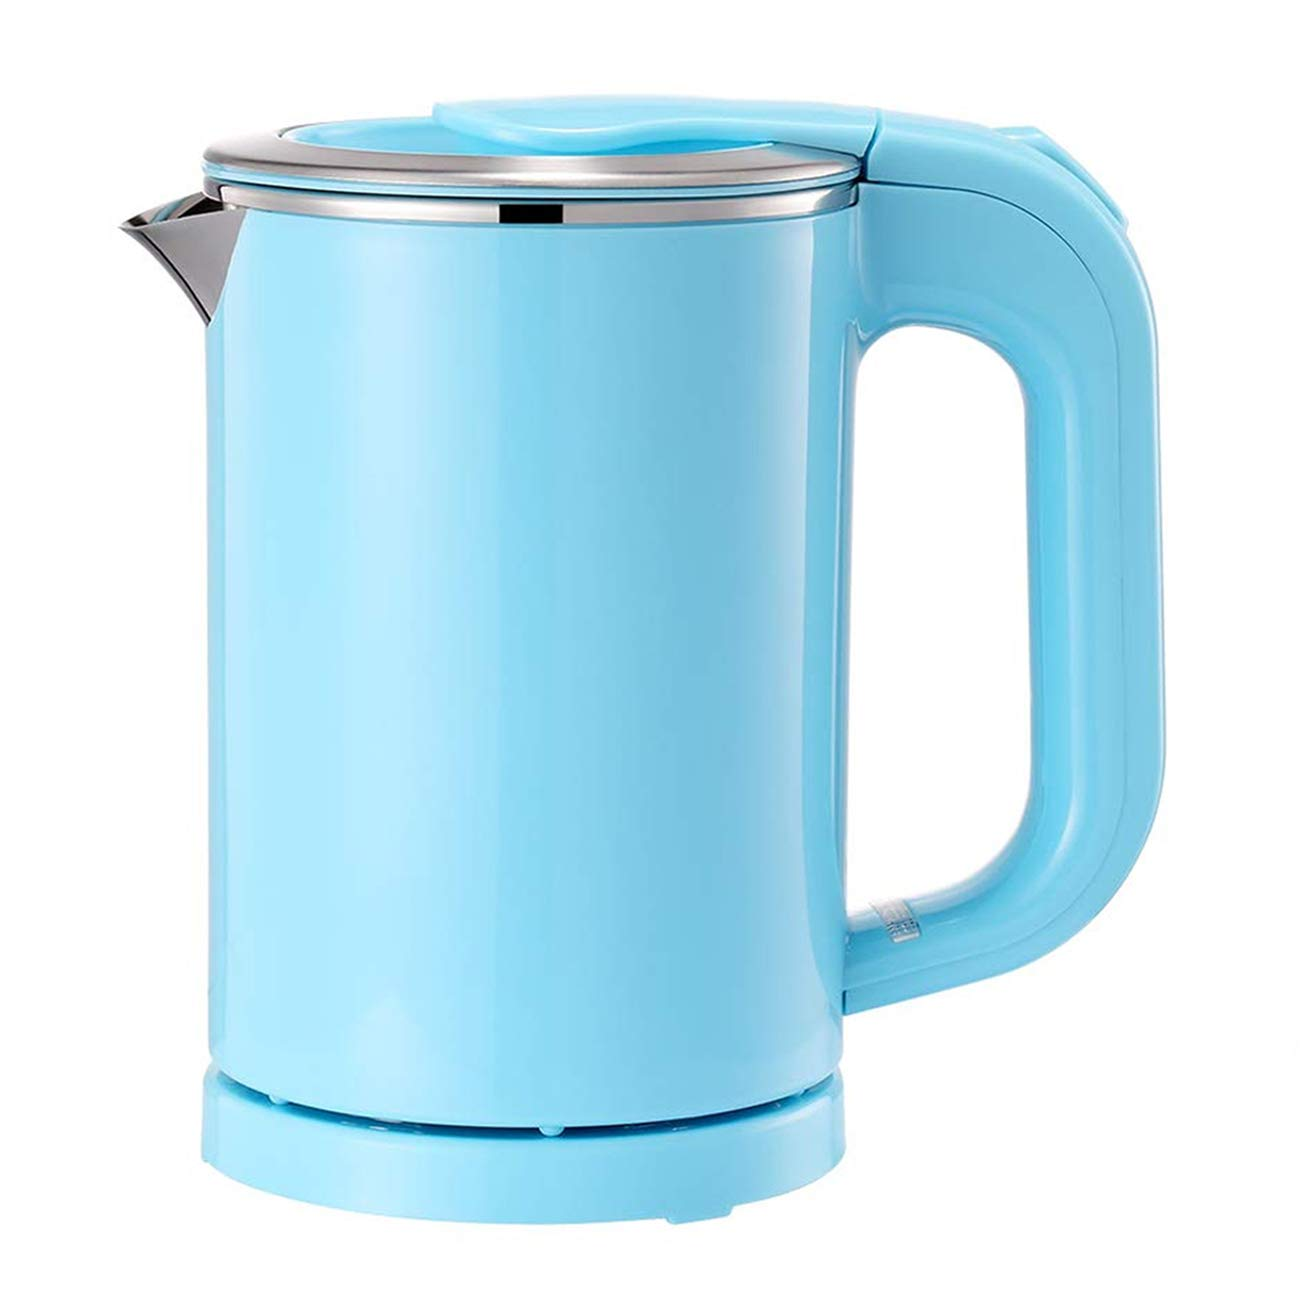 Portable Electric Kettle - 0.5L Mini Stainless Steel Travel Kettle - Water Touch Inner Surface without Plastic & Cool Touch Outer Surface (Blue)